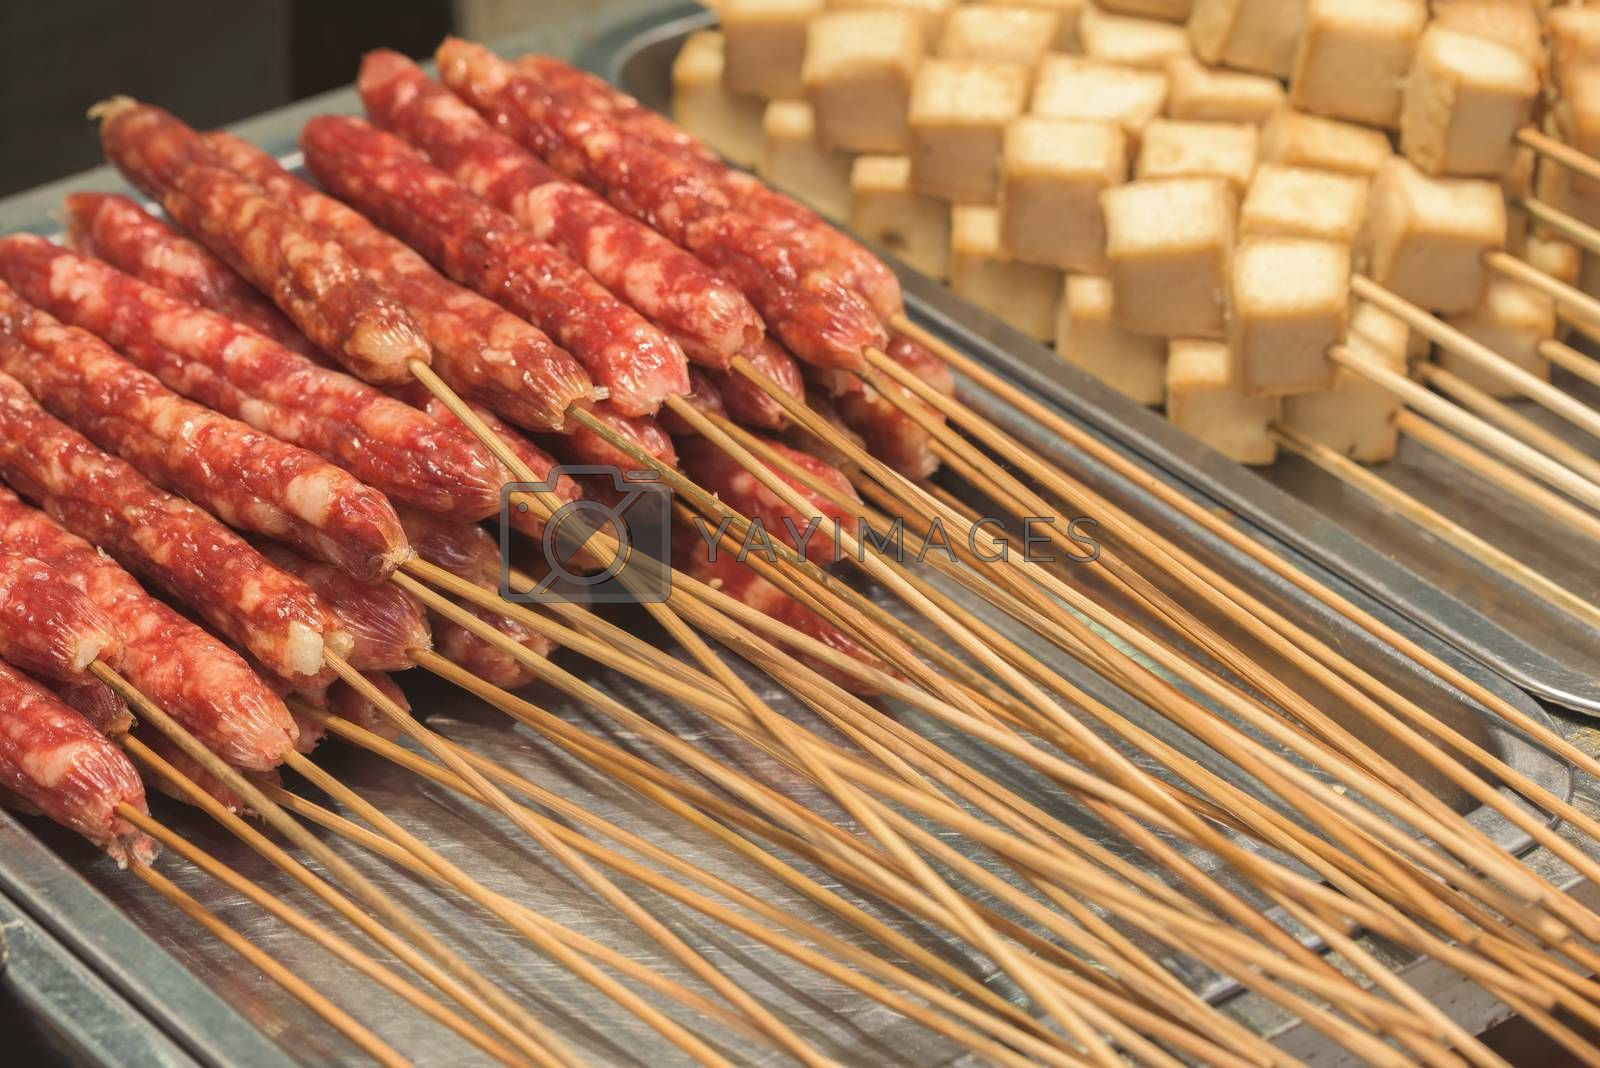 Street food asia. Meat on a stick. Chinese street food